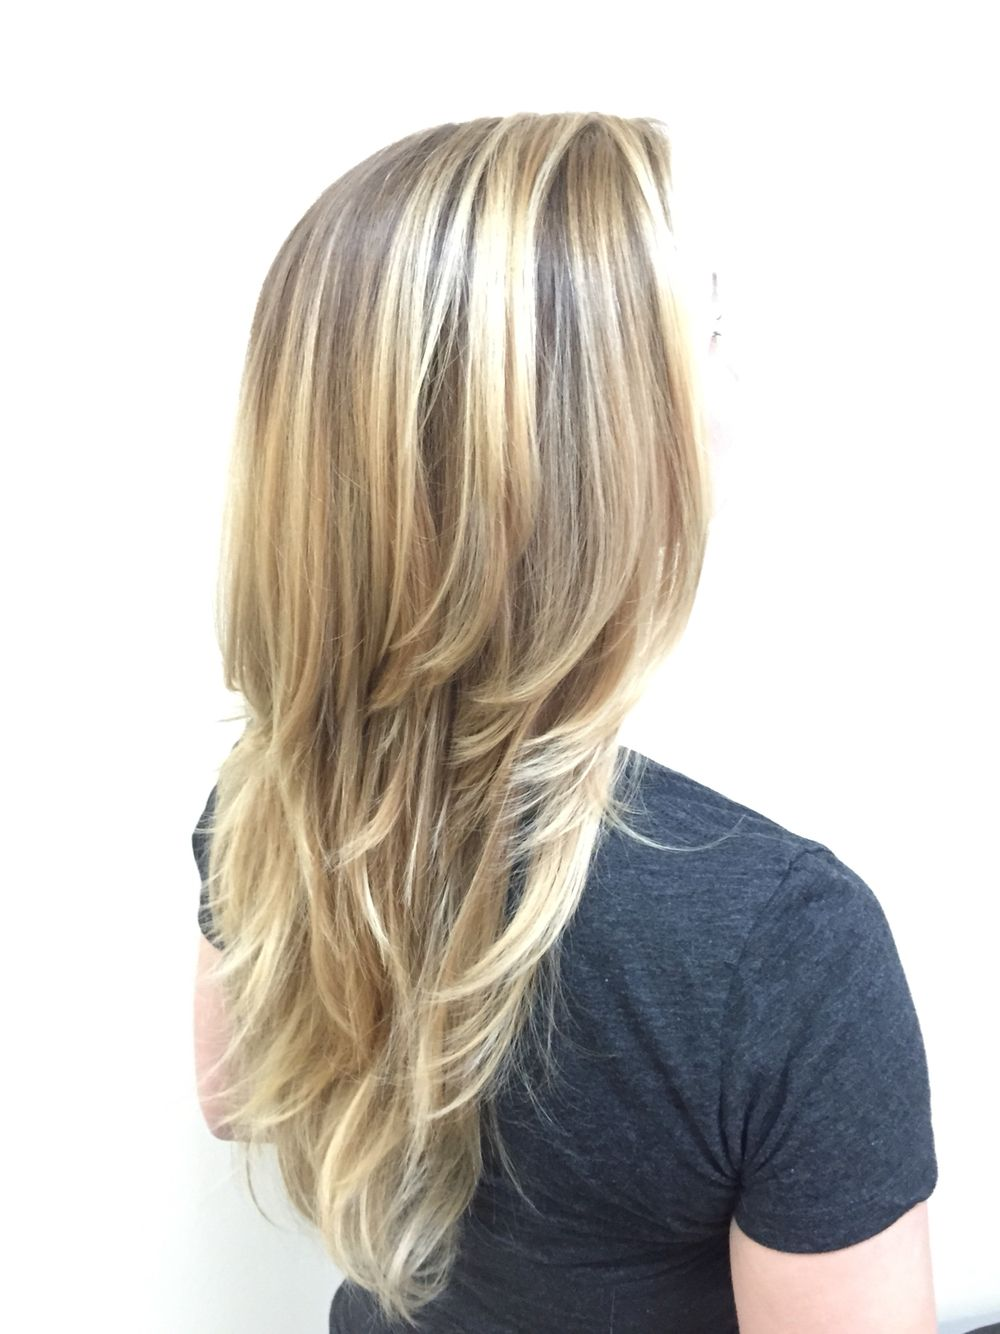 Pin On Work Done By Brittany Leith Master Stylist At Shear Image